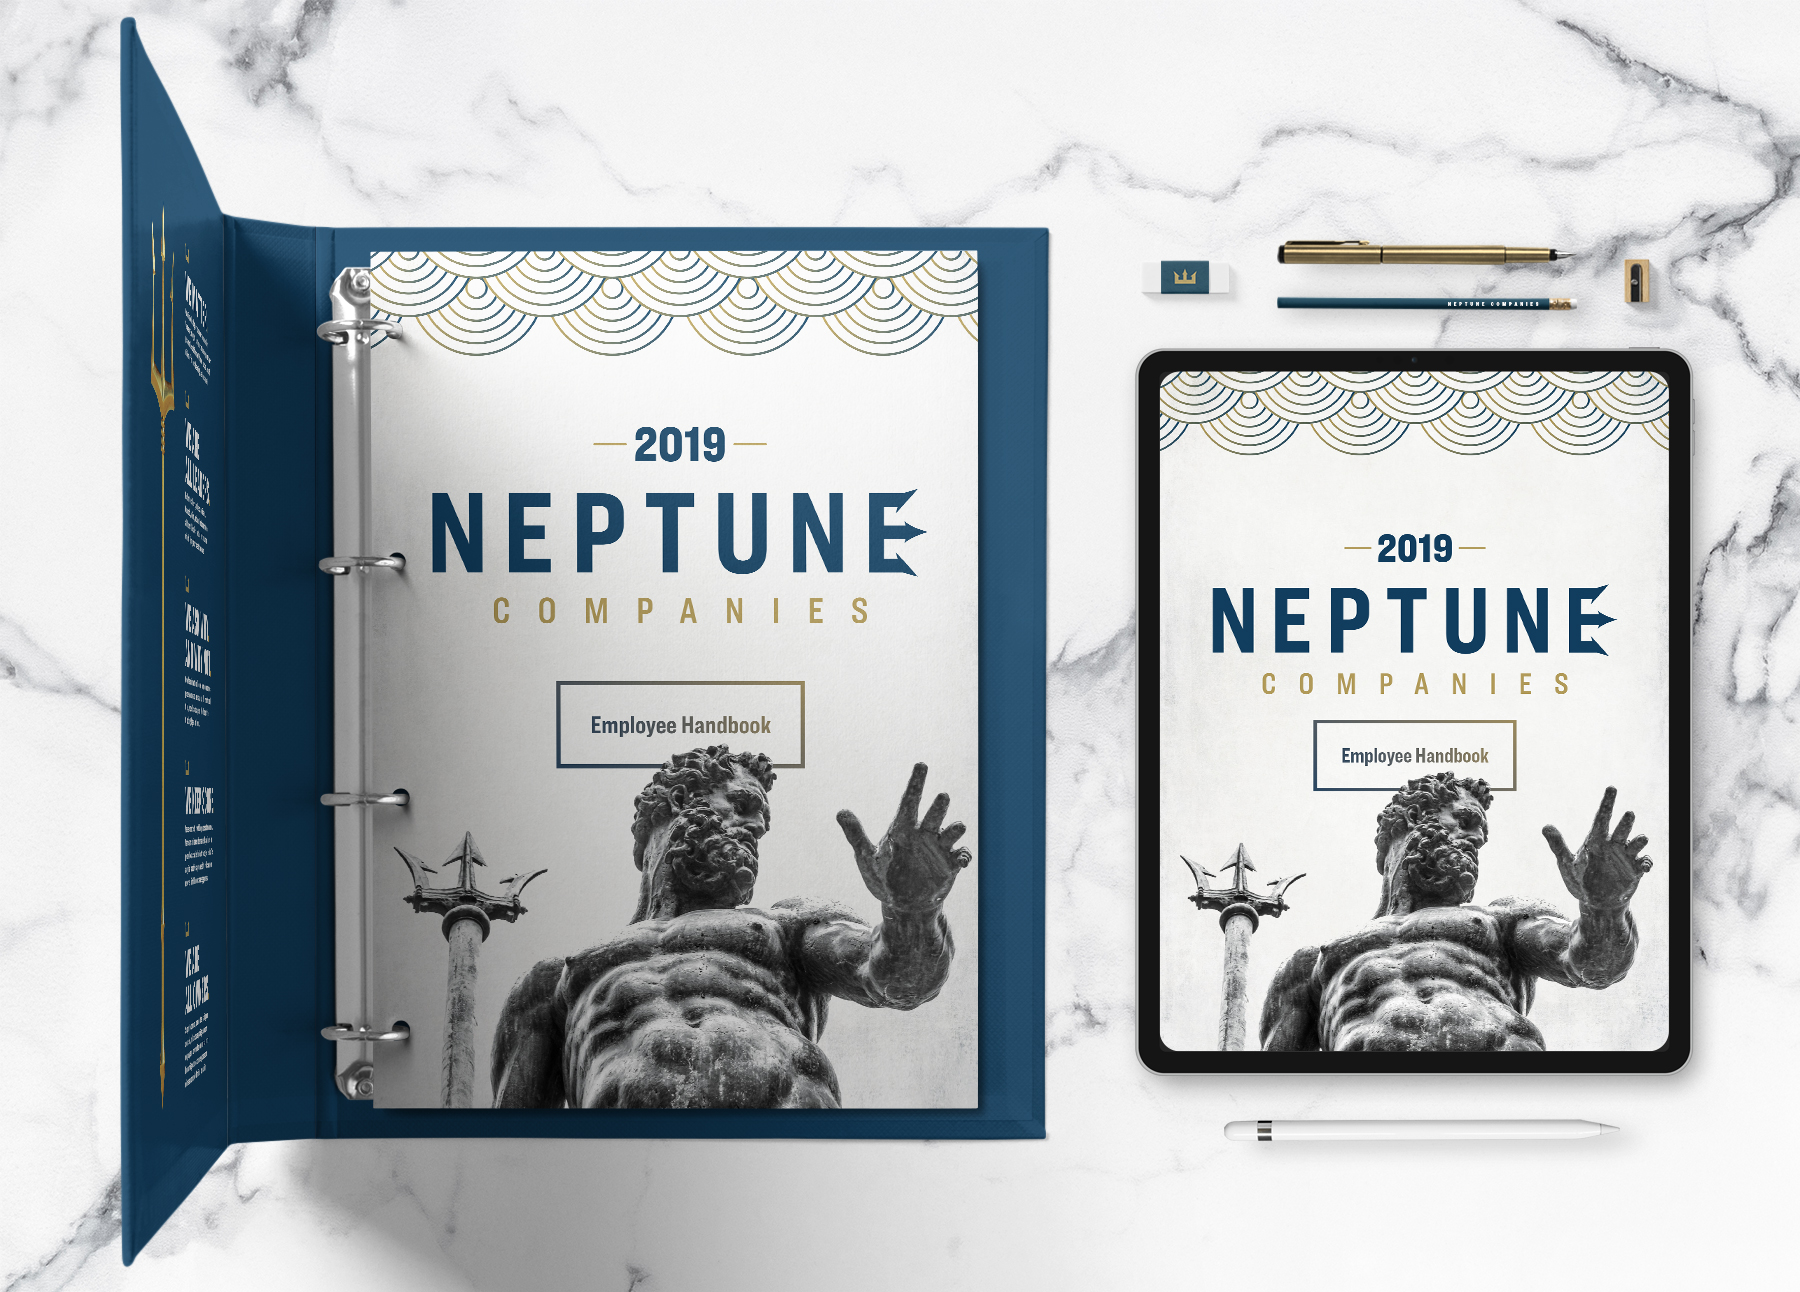 Neptune Companies Handbook - Cover and iPad